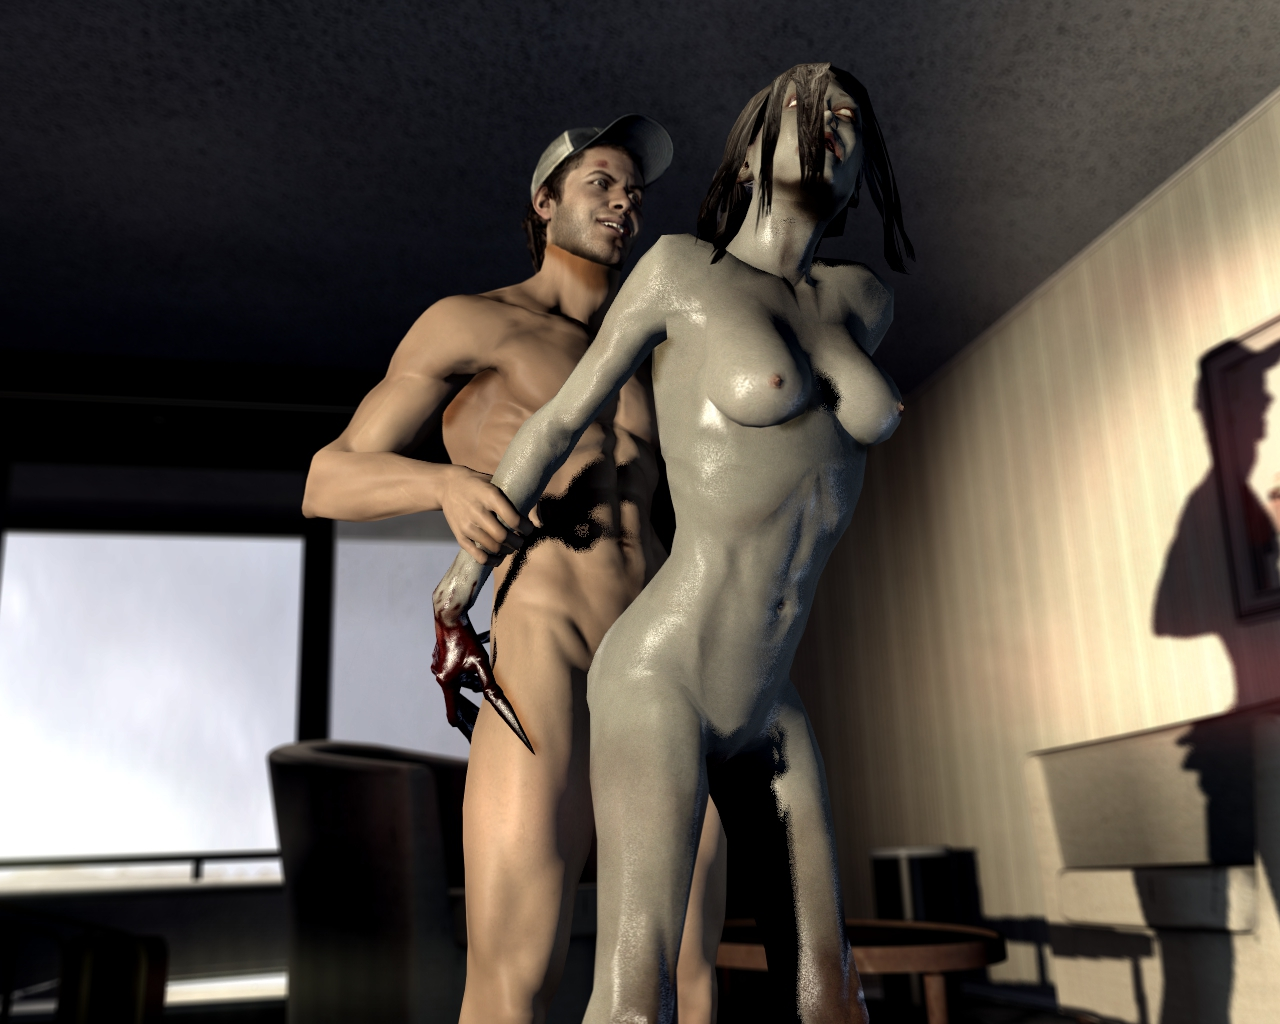 L4d hunter and zoey humping naked porn image